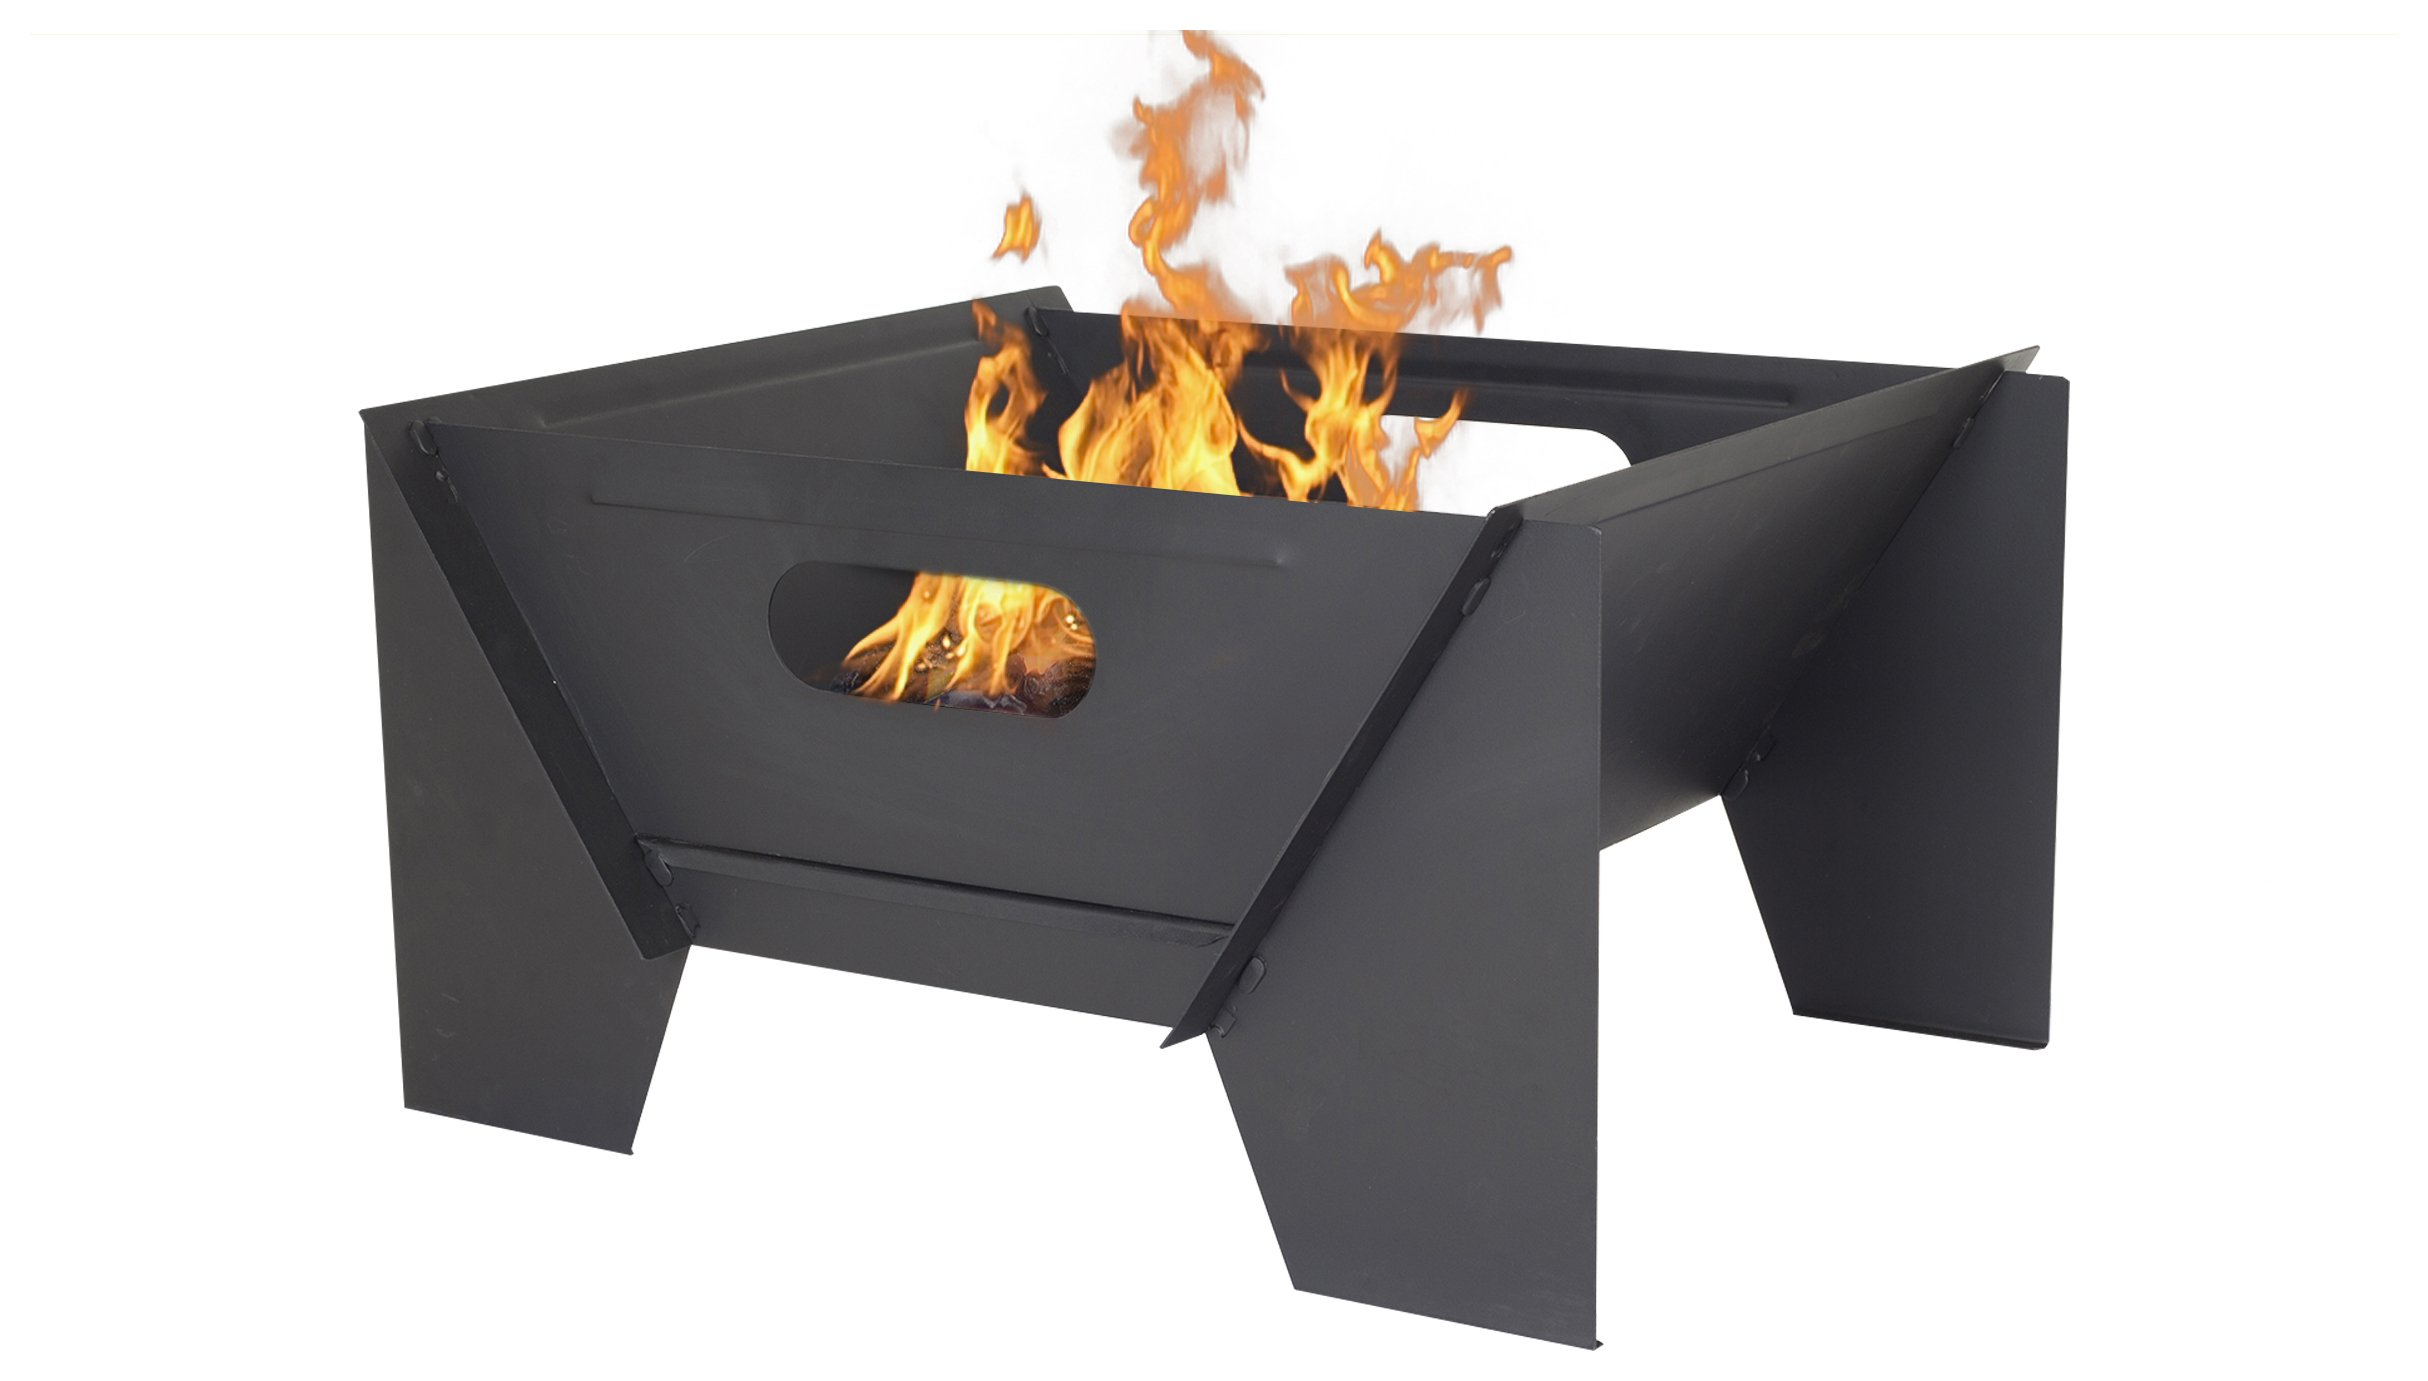 Image of La Hacienda Stoke It Fire Pit